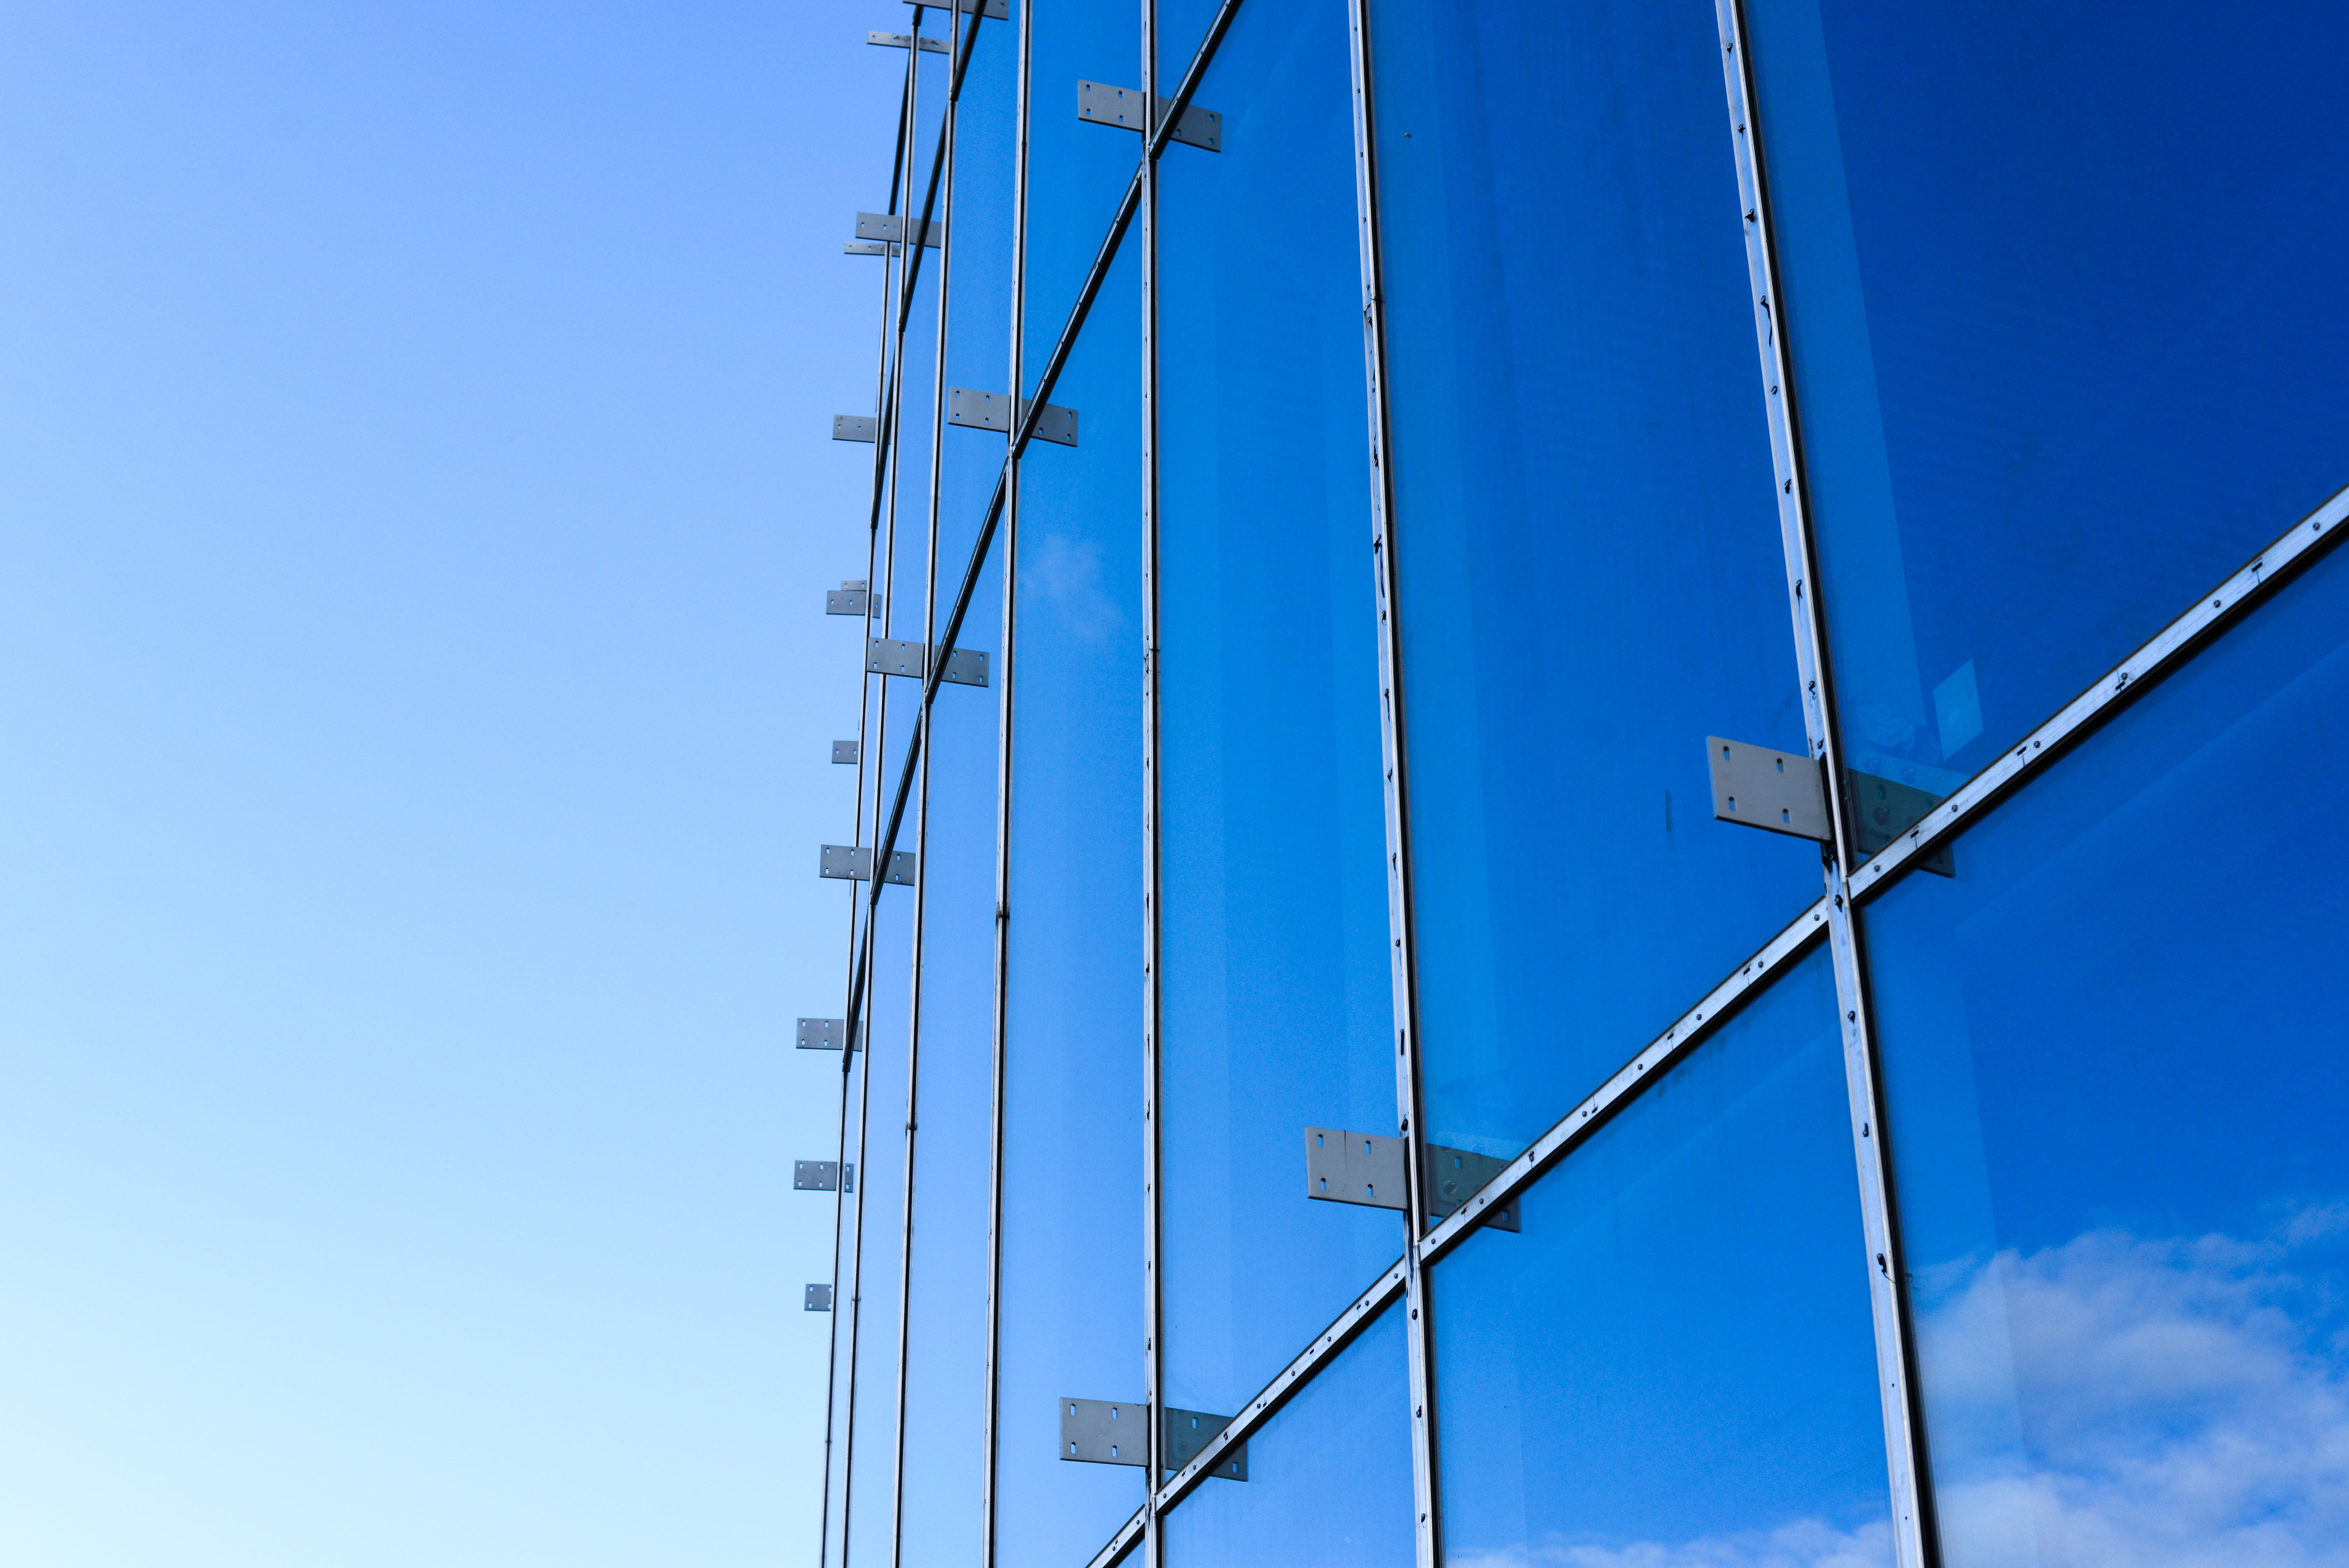 Image of large windows and a blue sky